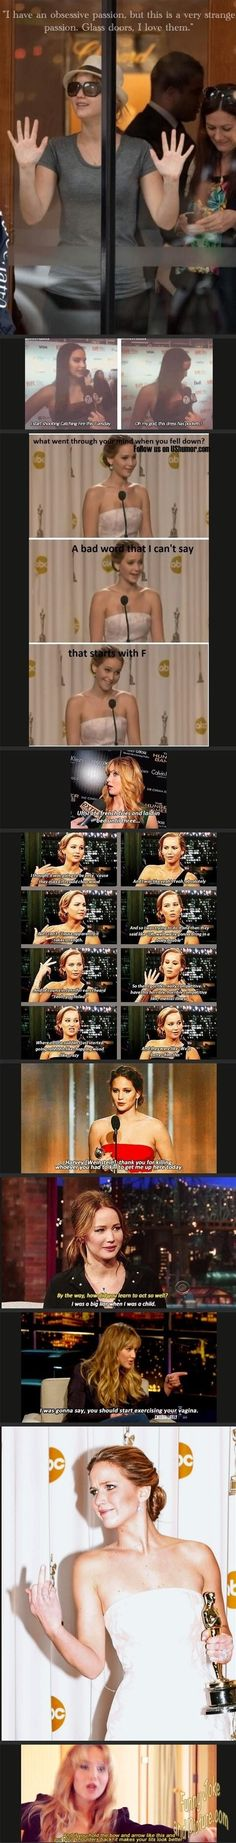 Hahaha, OMG look at this Oh Jennifer Lawrence�?�